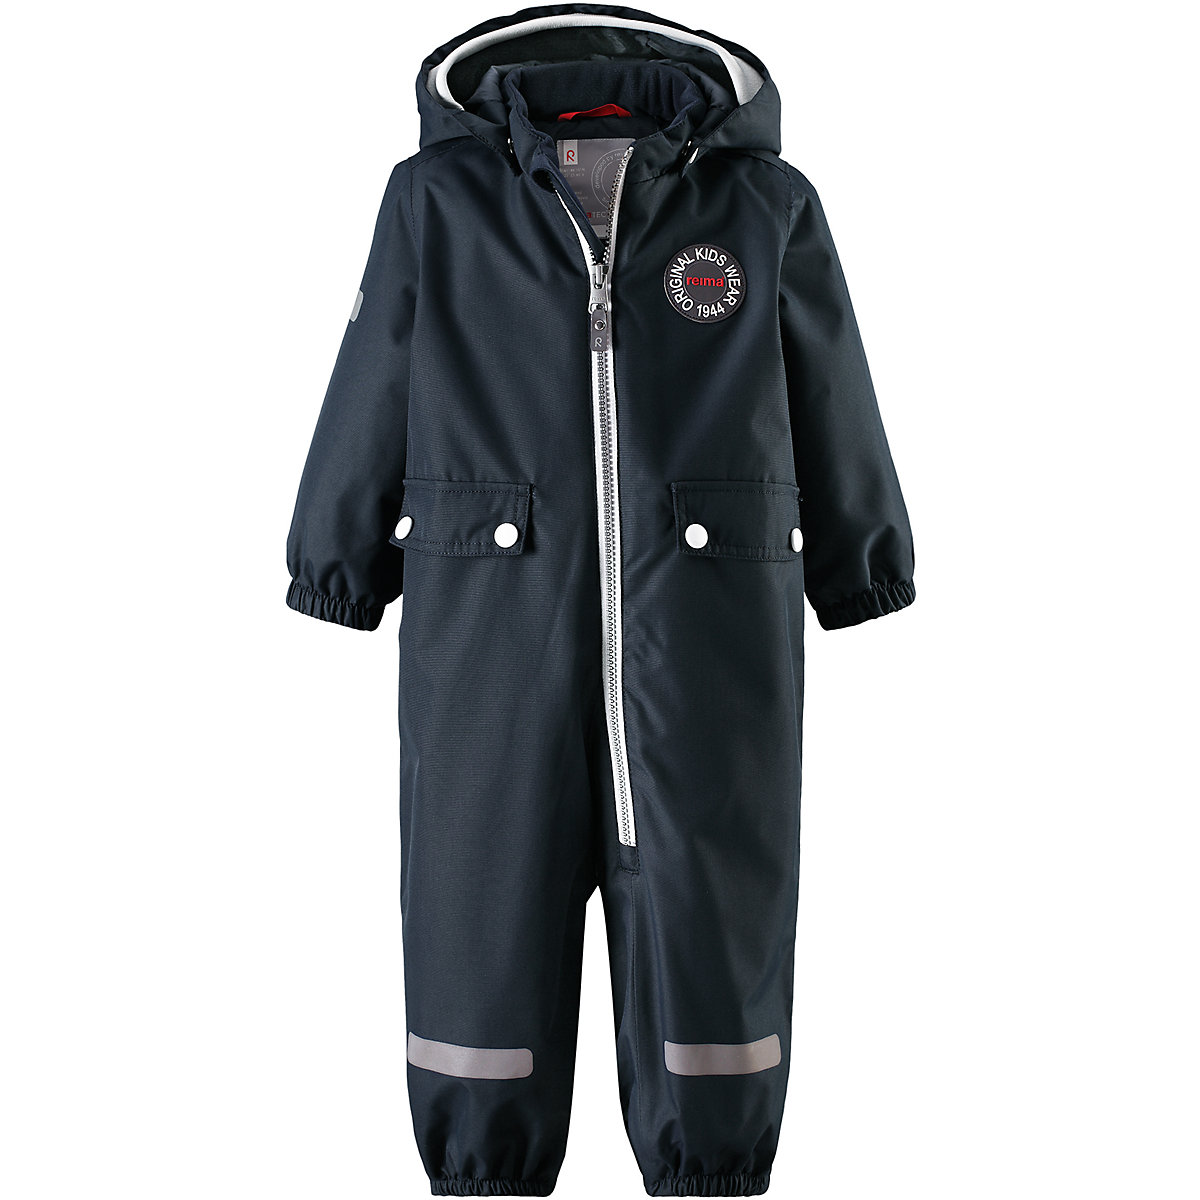 REIMA Overalls  7636443 for boys and girls polyester winter reima overalls 7628255 for boys and girls polyester winter